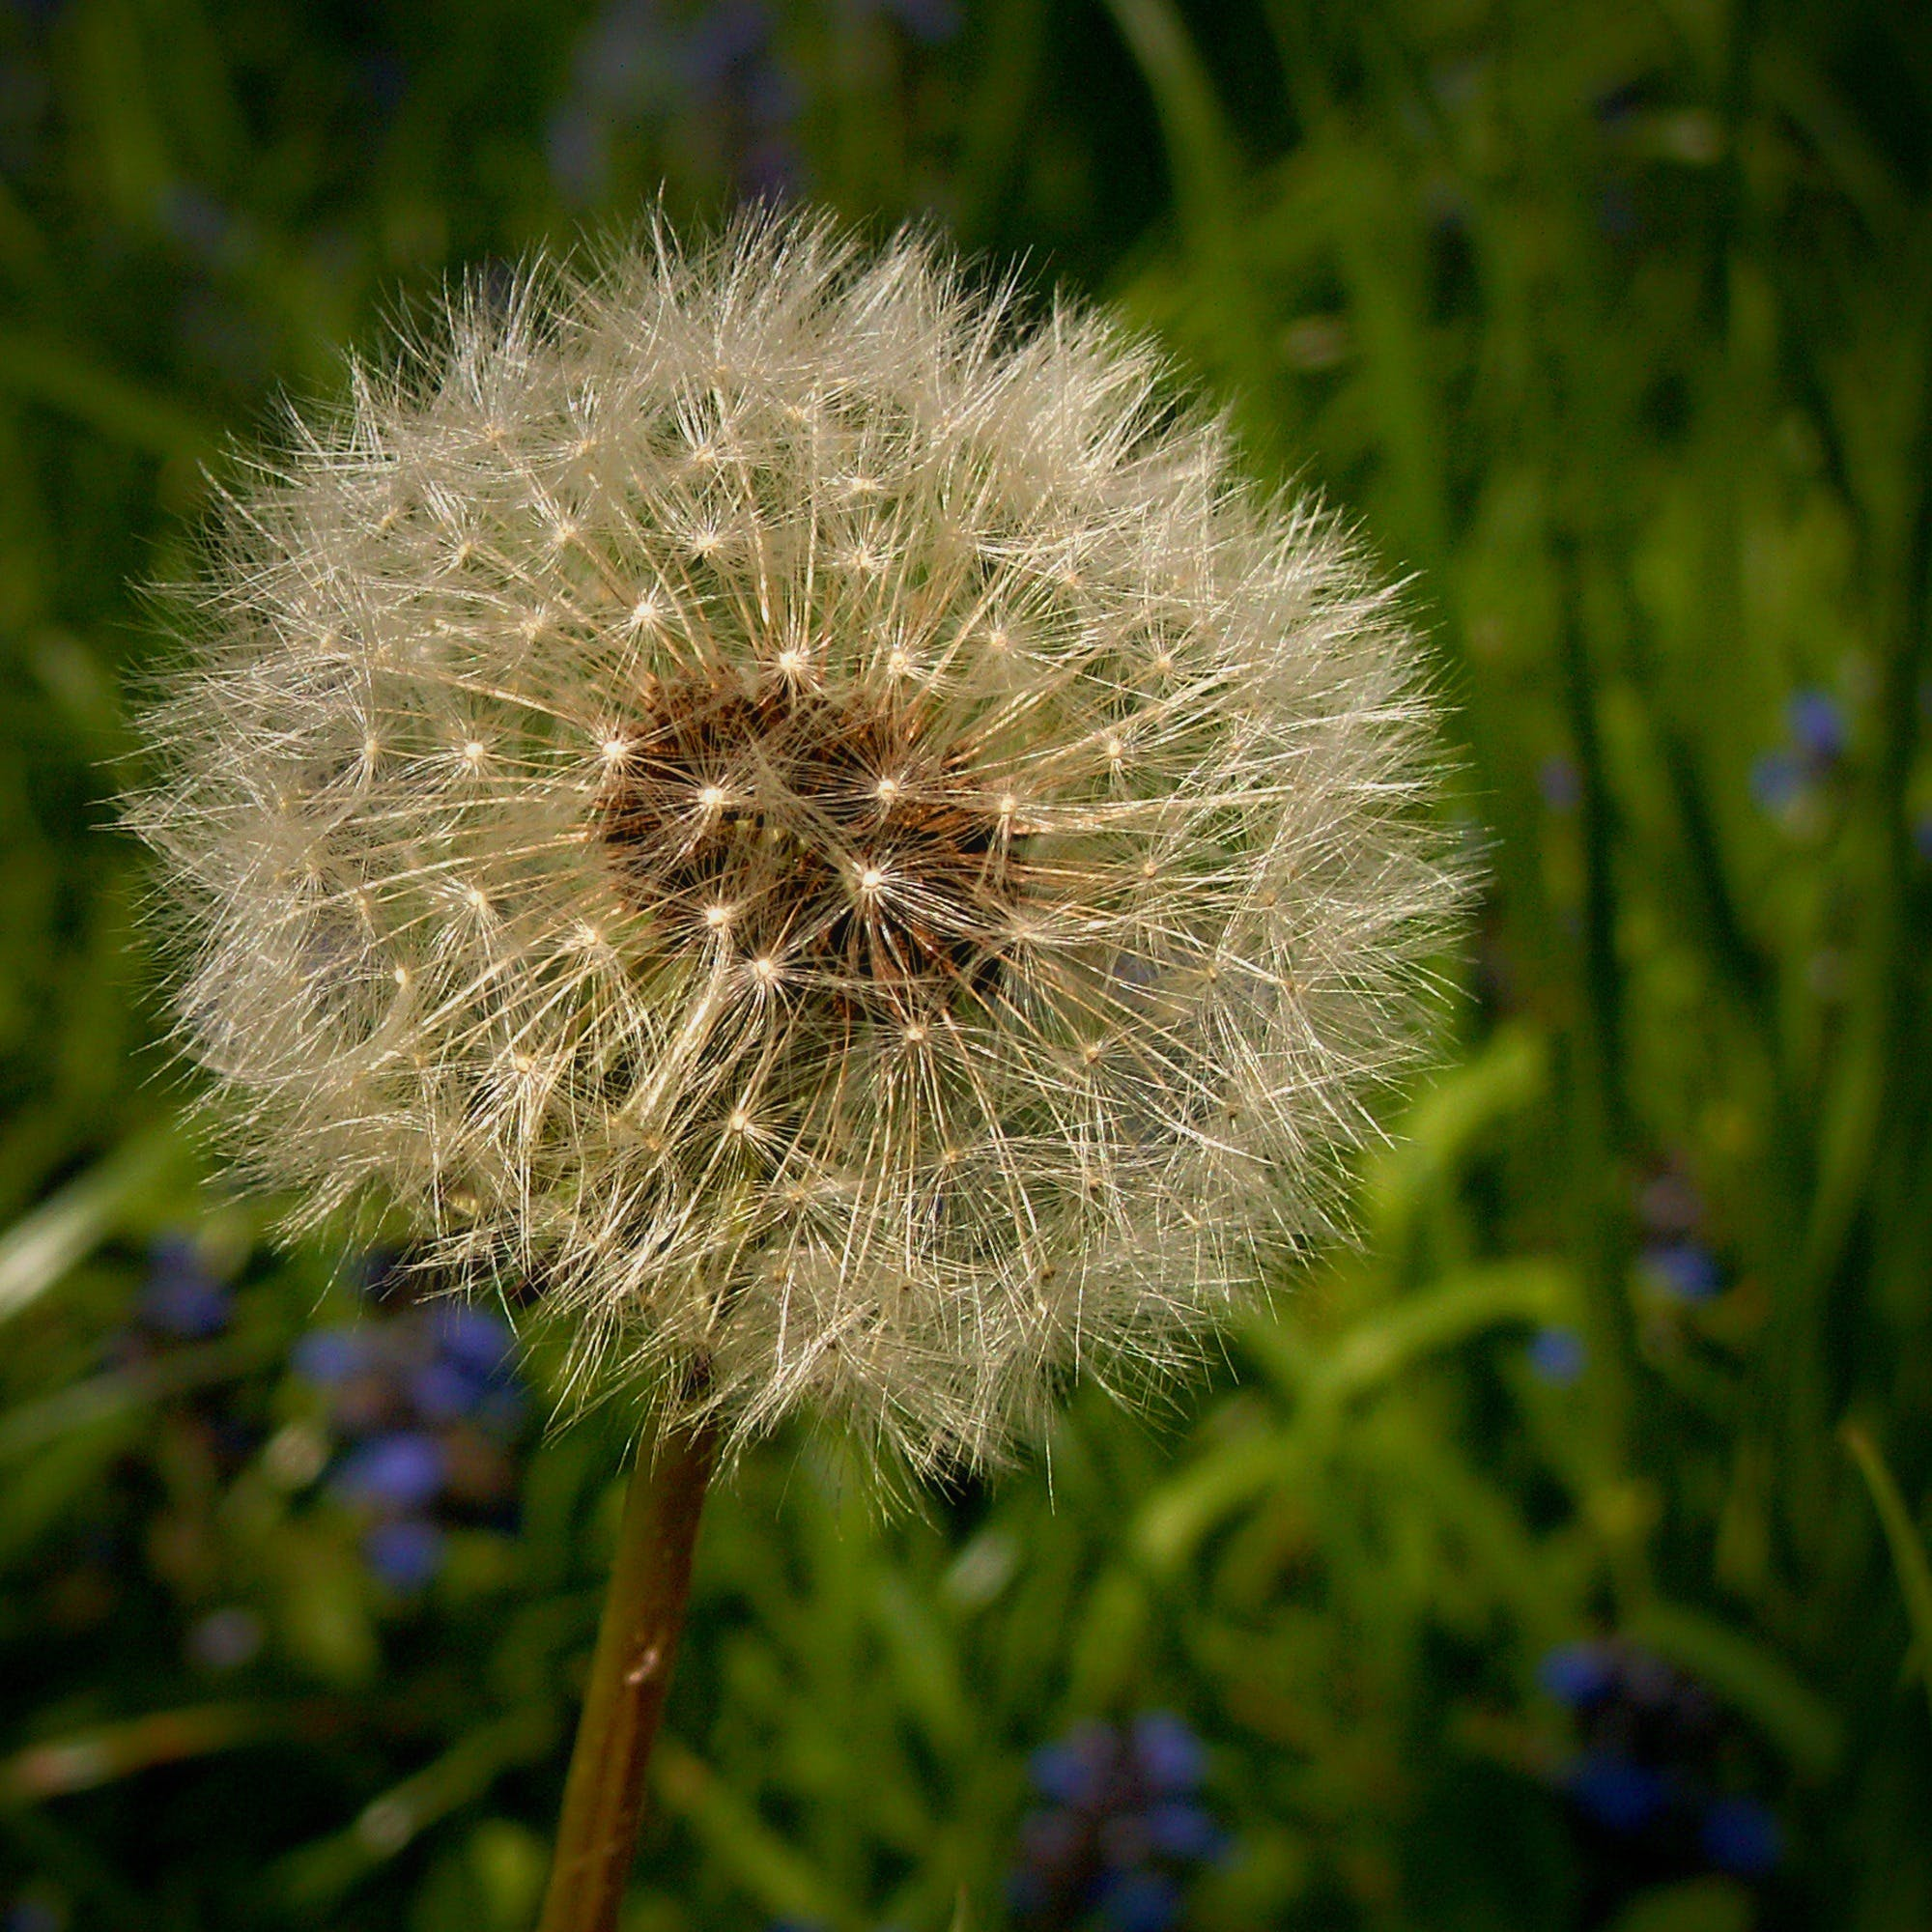 Dandelion in Focus Photography